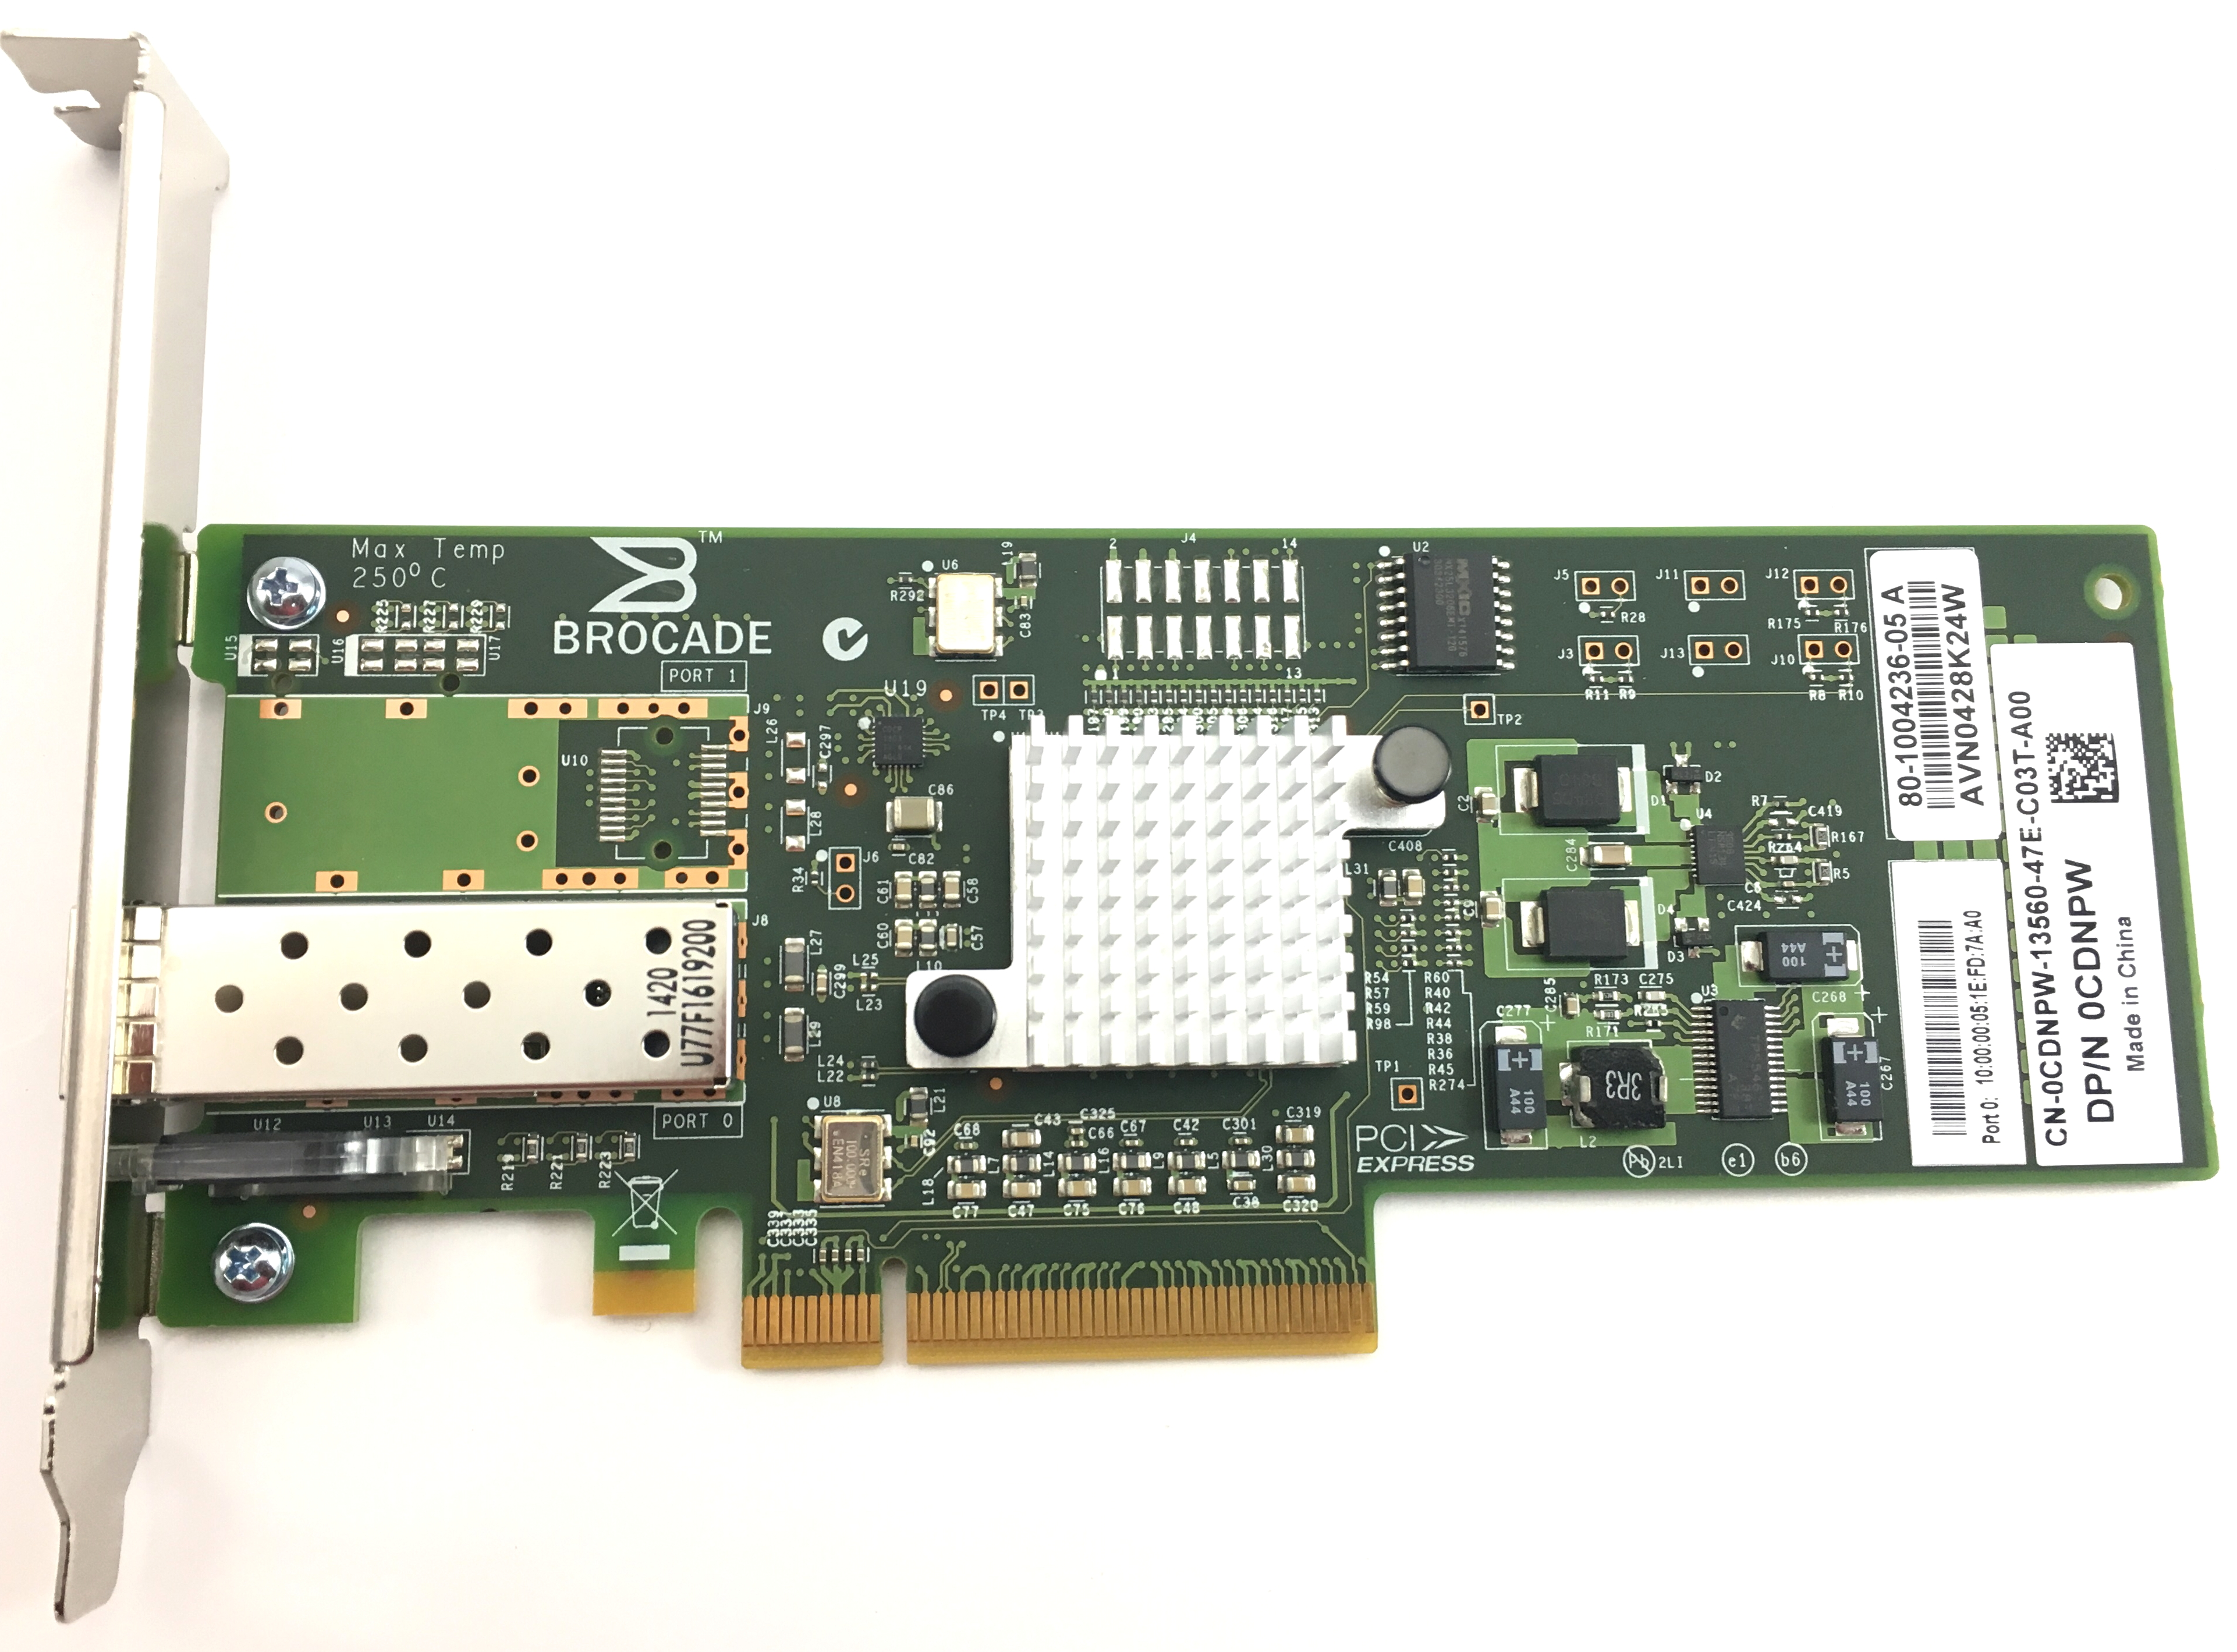 CDNPW Dell Brocade 815 8GB Single Port FC PCI-E Network Card (CDNPW)